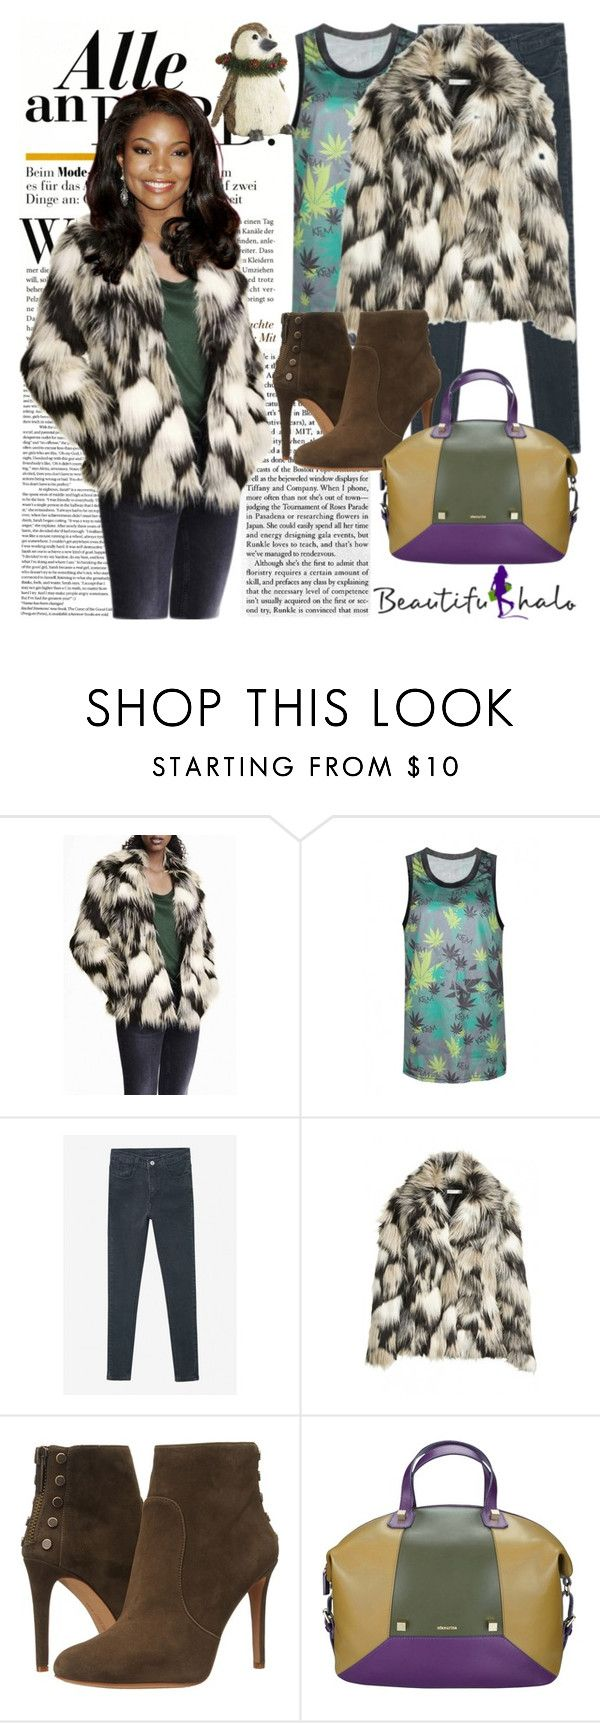 """""""BeautifulHalo-05 (55)"""" by irinavsl ❤ liked on Polyvore featuring Vince Camuto, Manurina and bhalo"""